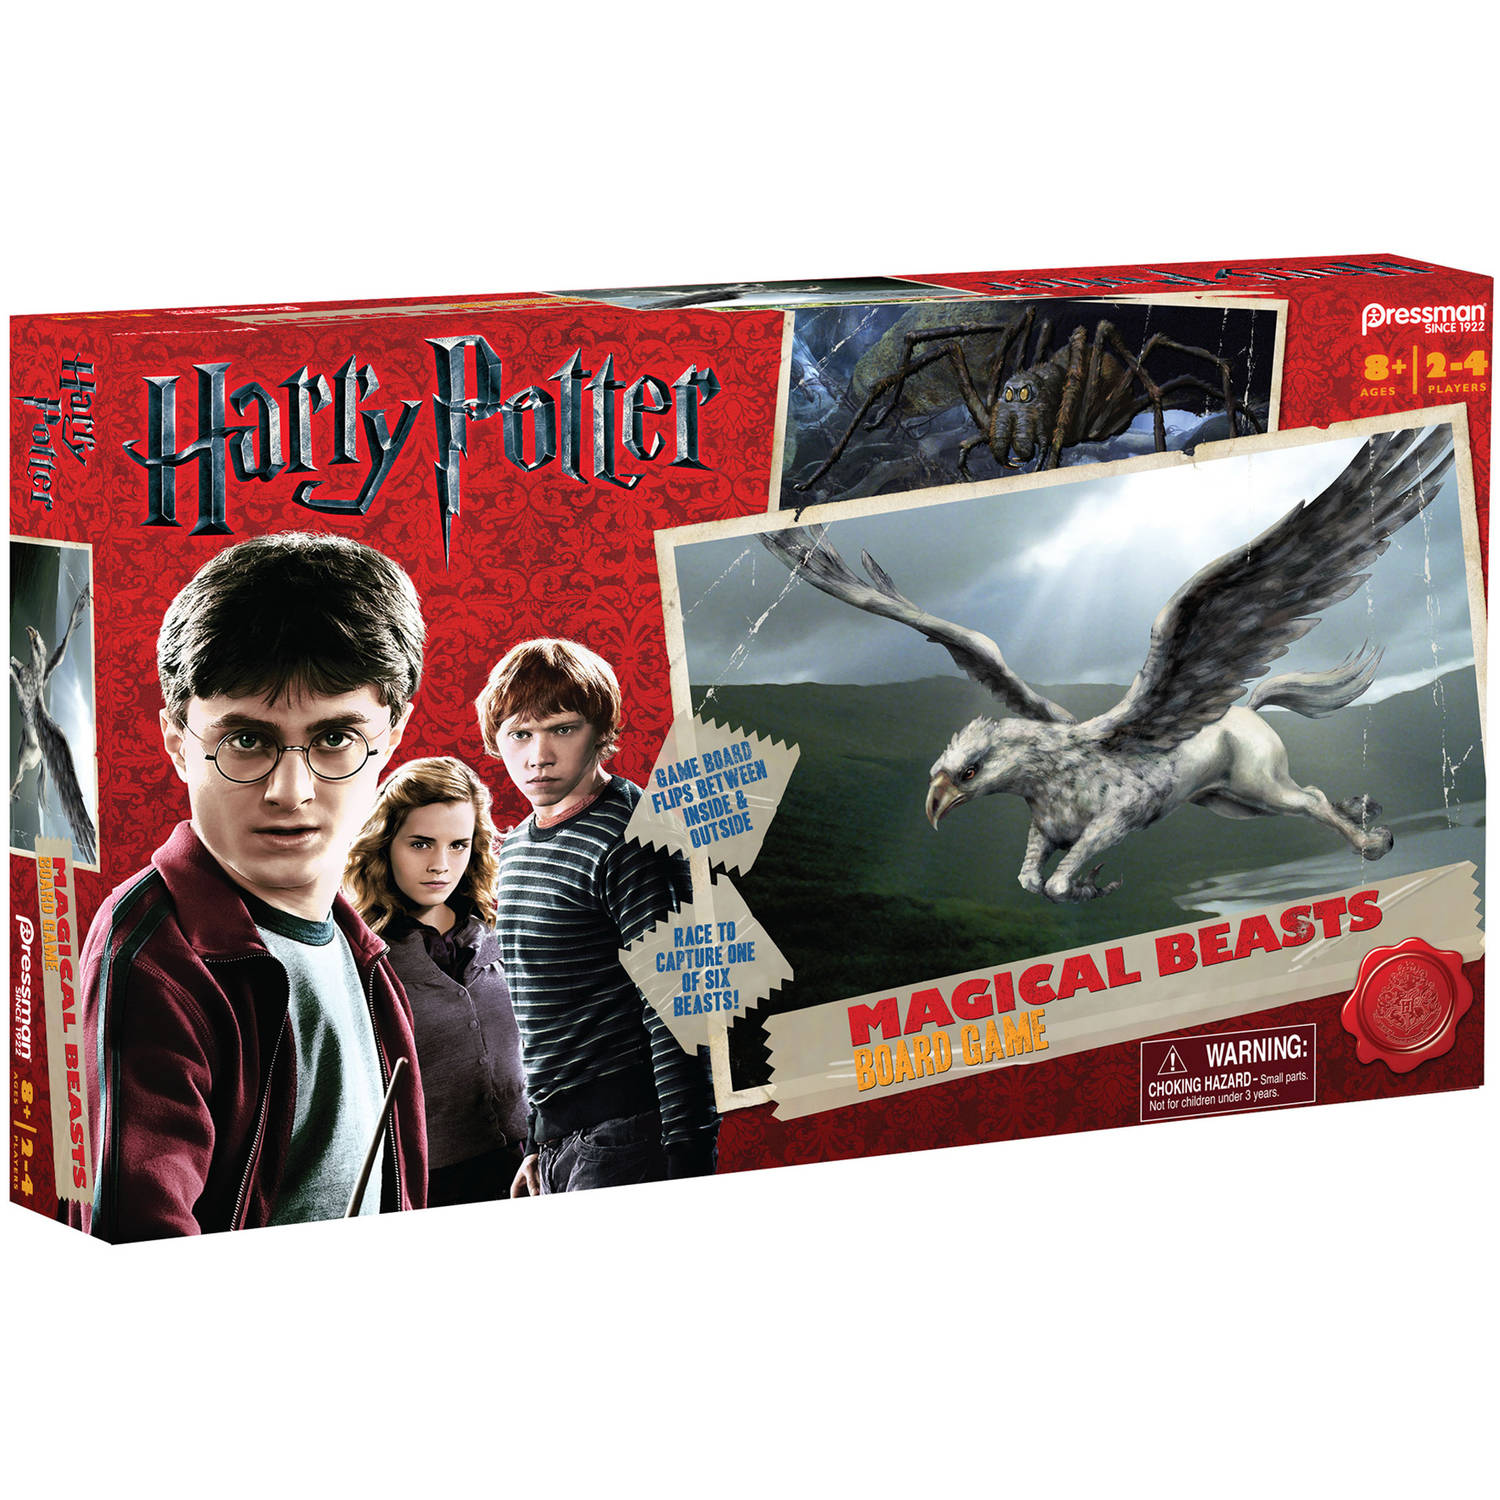 Harry Potter Magical Beasts Board Game by Pressman Toy